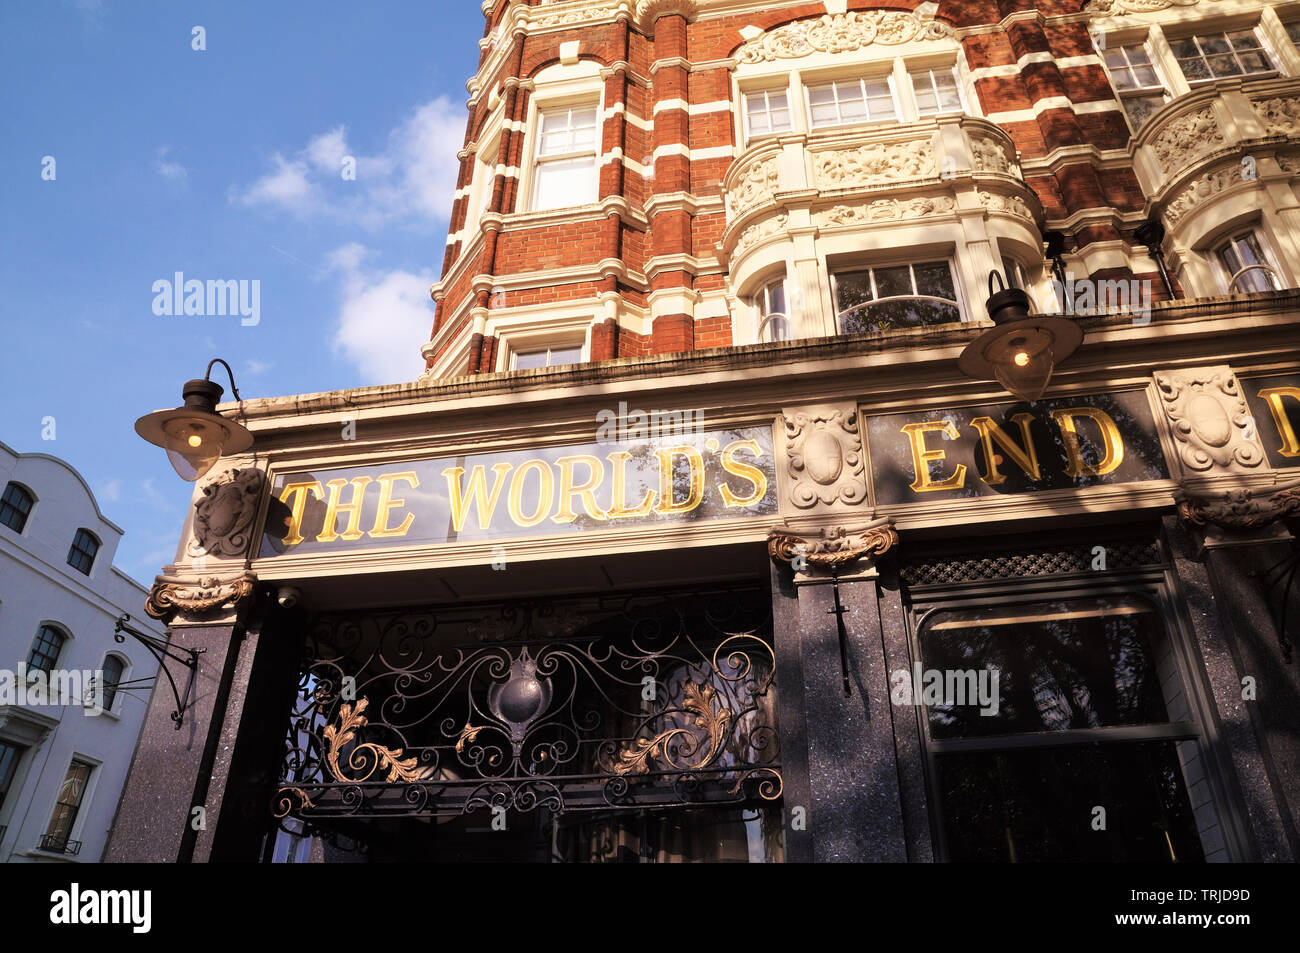 The World's End Market (formerly World's End Distillery), a famous late-Victorian gin palace on the King's Road, Chelsea, London, England, UK - Stock Image